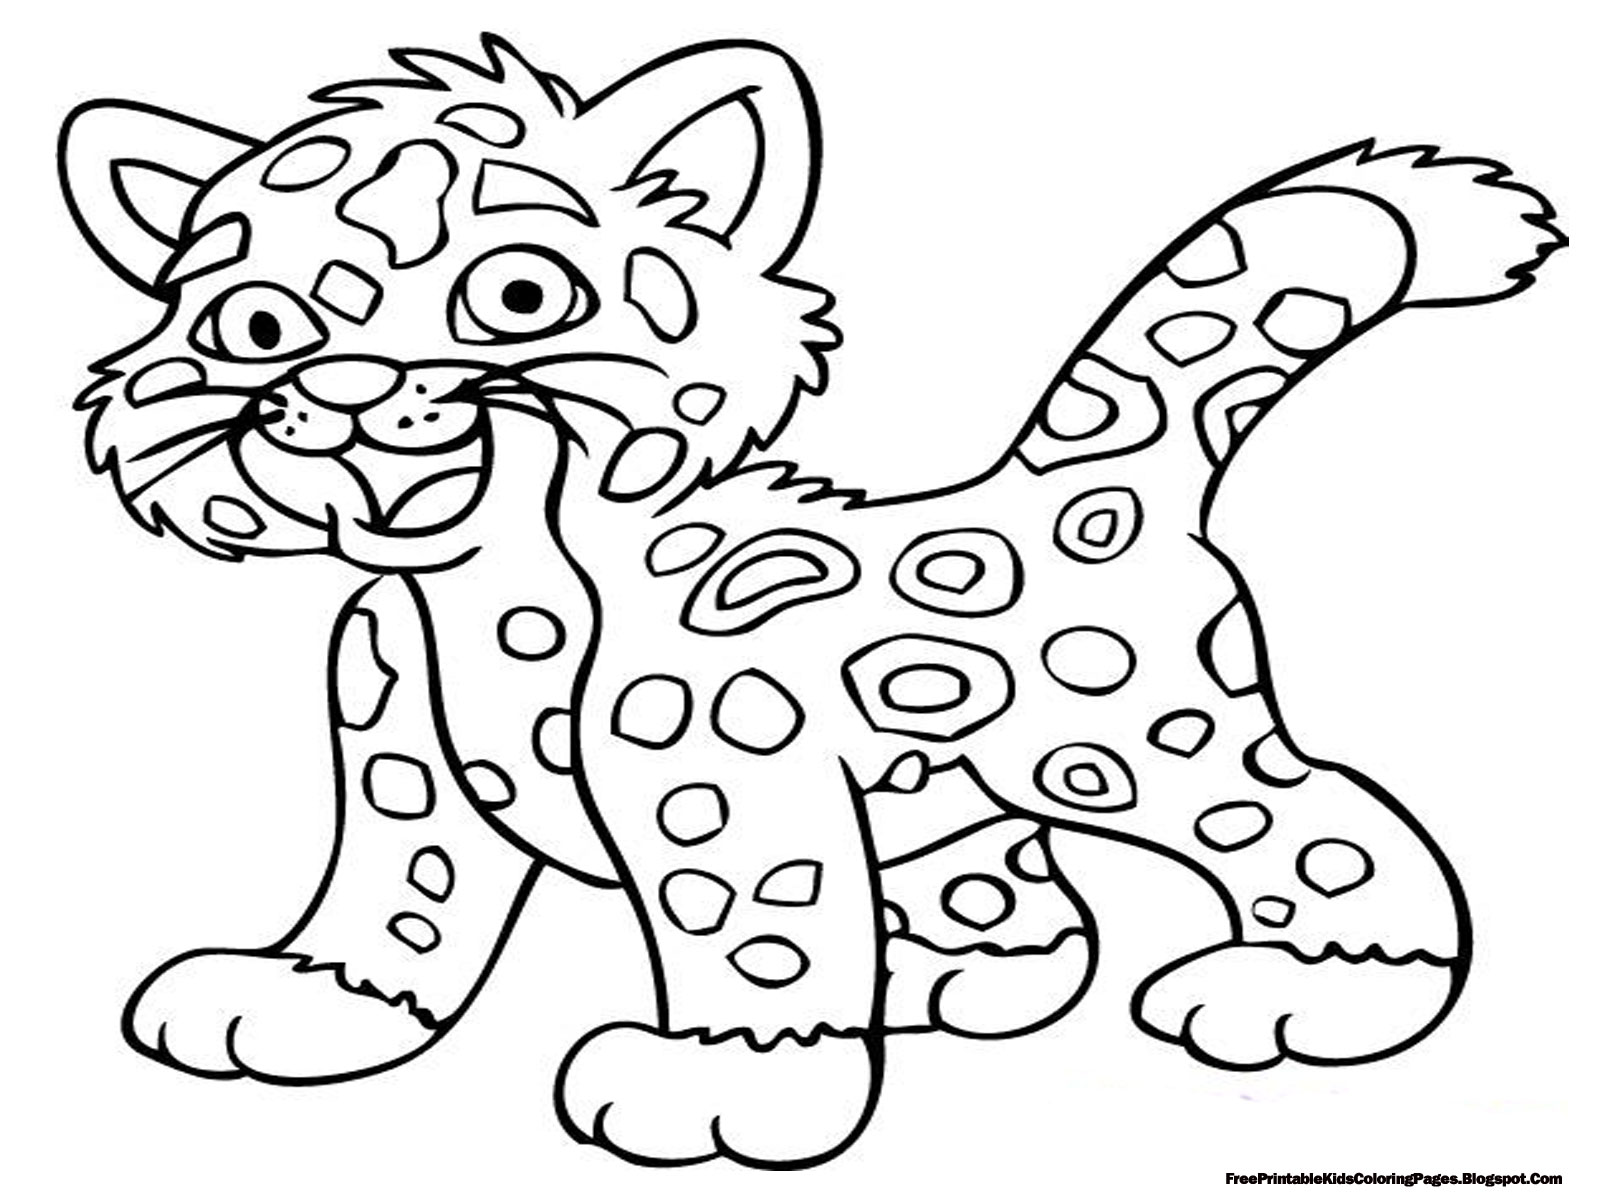 jaguar coloring pages - Printable Coloring Pages Of Animals